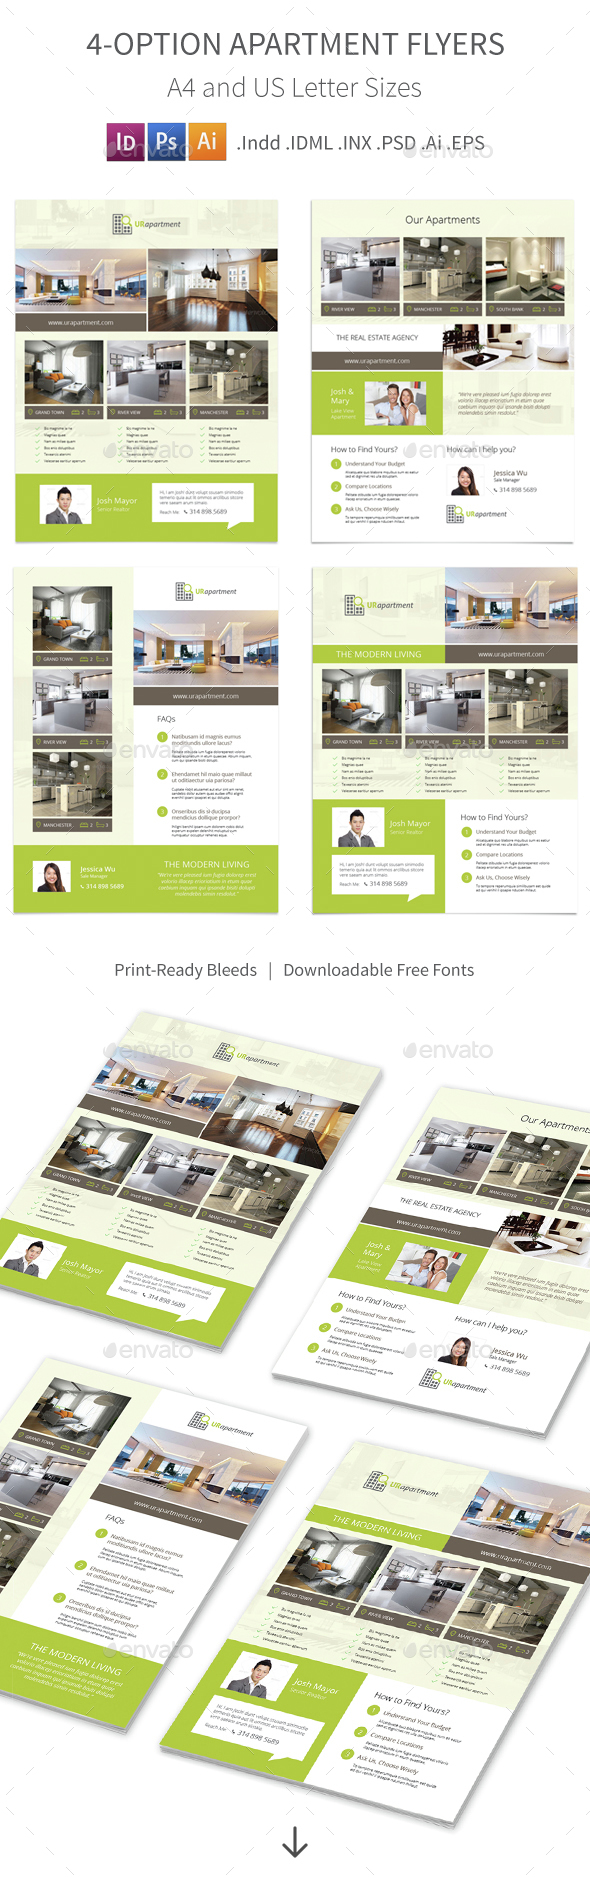 Apartment For Rent Flyers – 4 Options by Mike_pantone | GraphicRiver